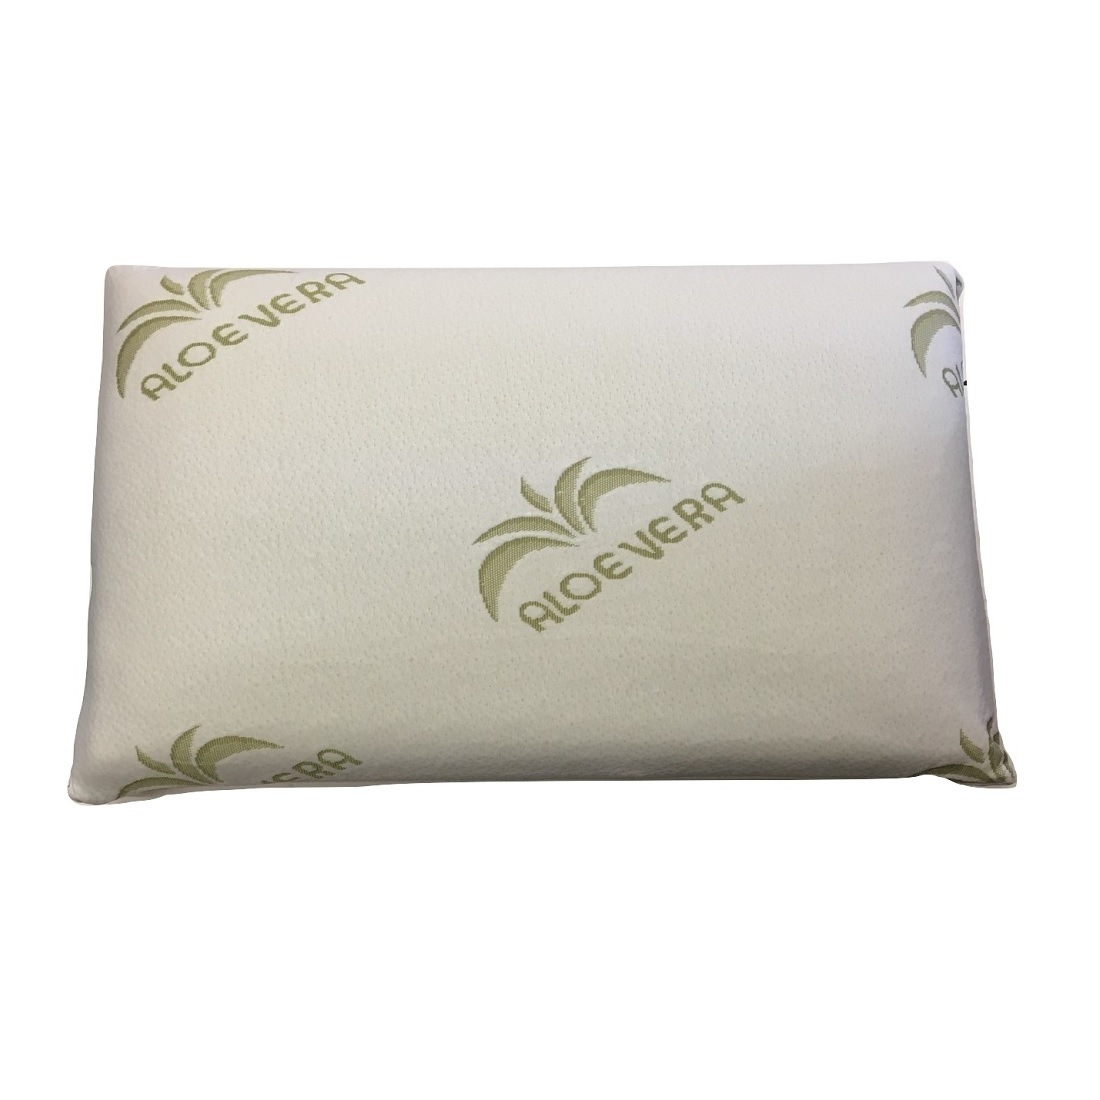 Guanciale Memory Foam Altezza Cm 13 Con Fodera Aloe Vera Made In Italy